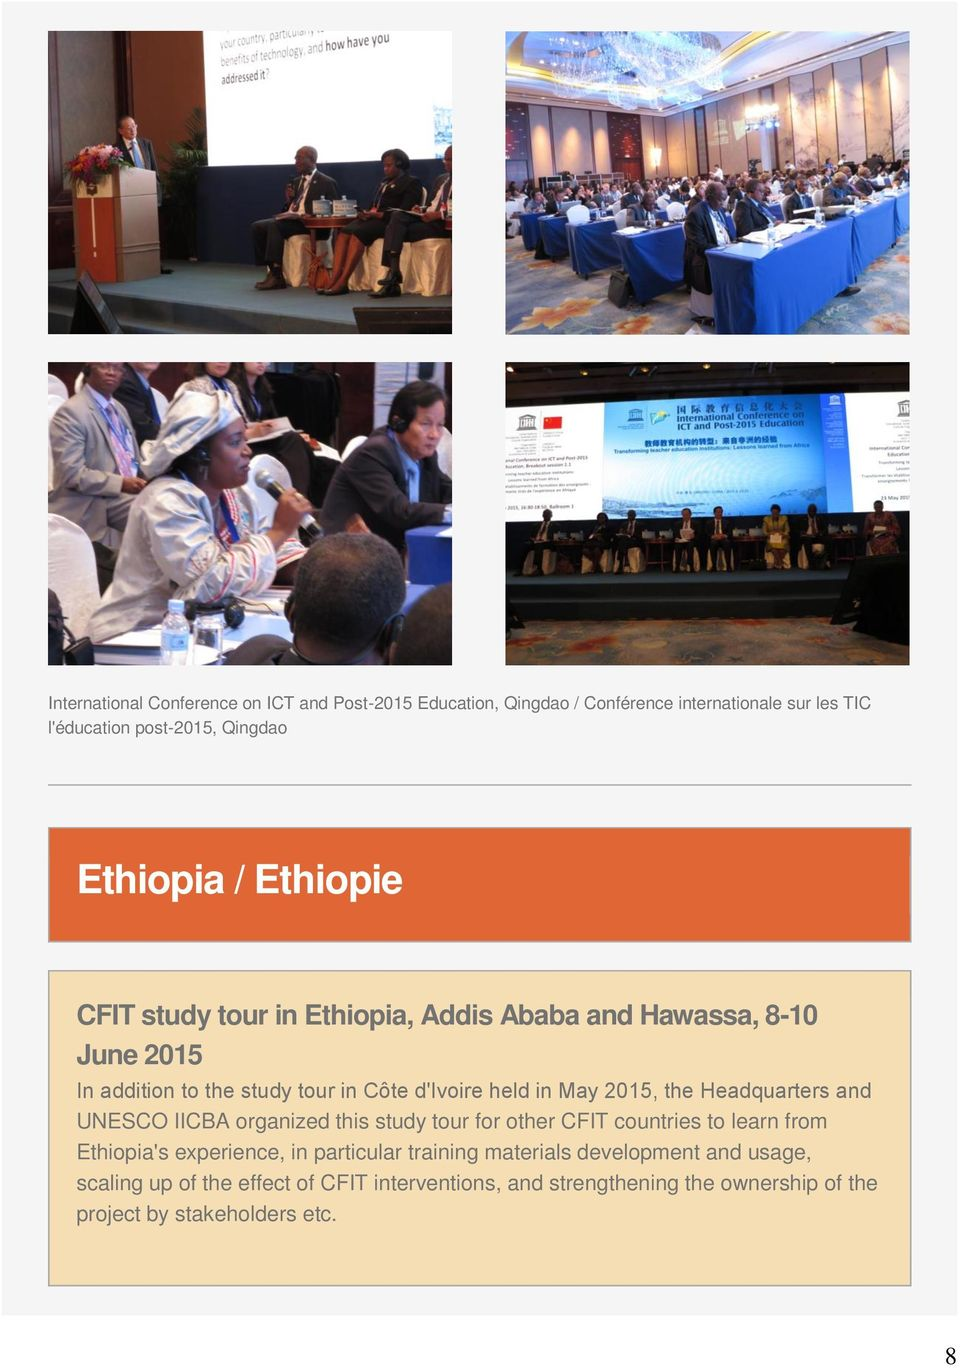 Headquarters and UNESCO IICBA organized this study tour for other CFIT countries to learn from Ethiopia's experience, in particular training